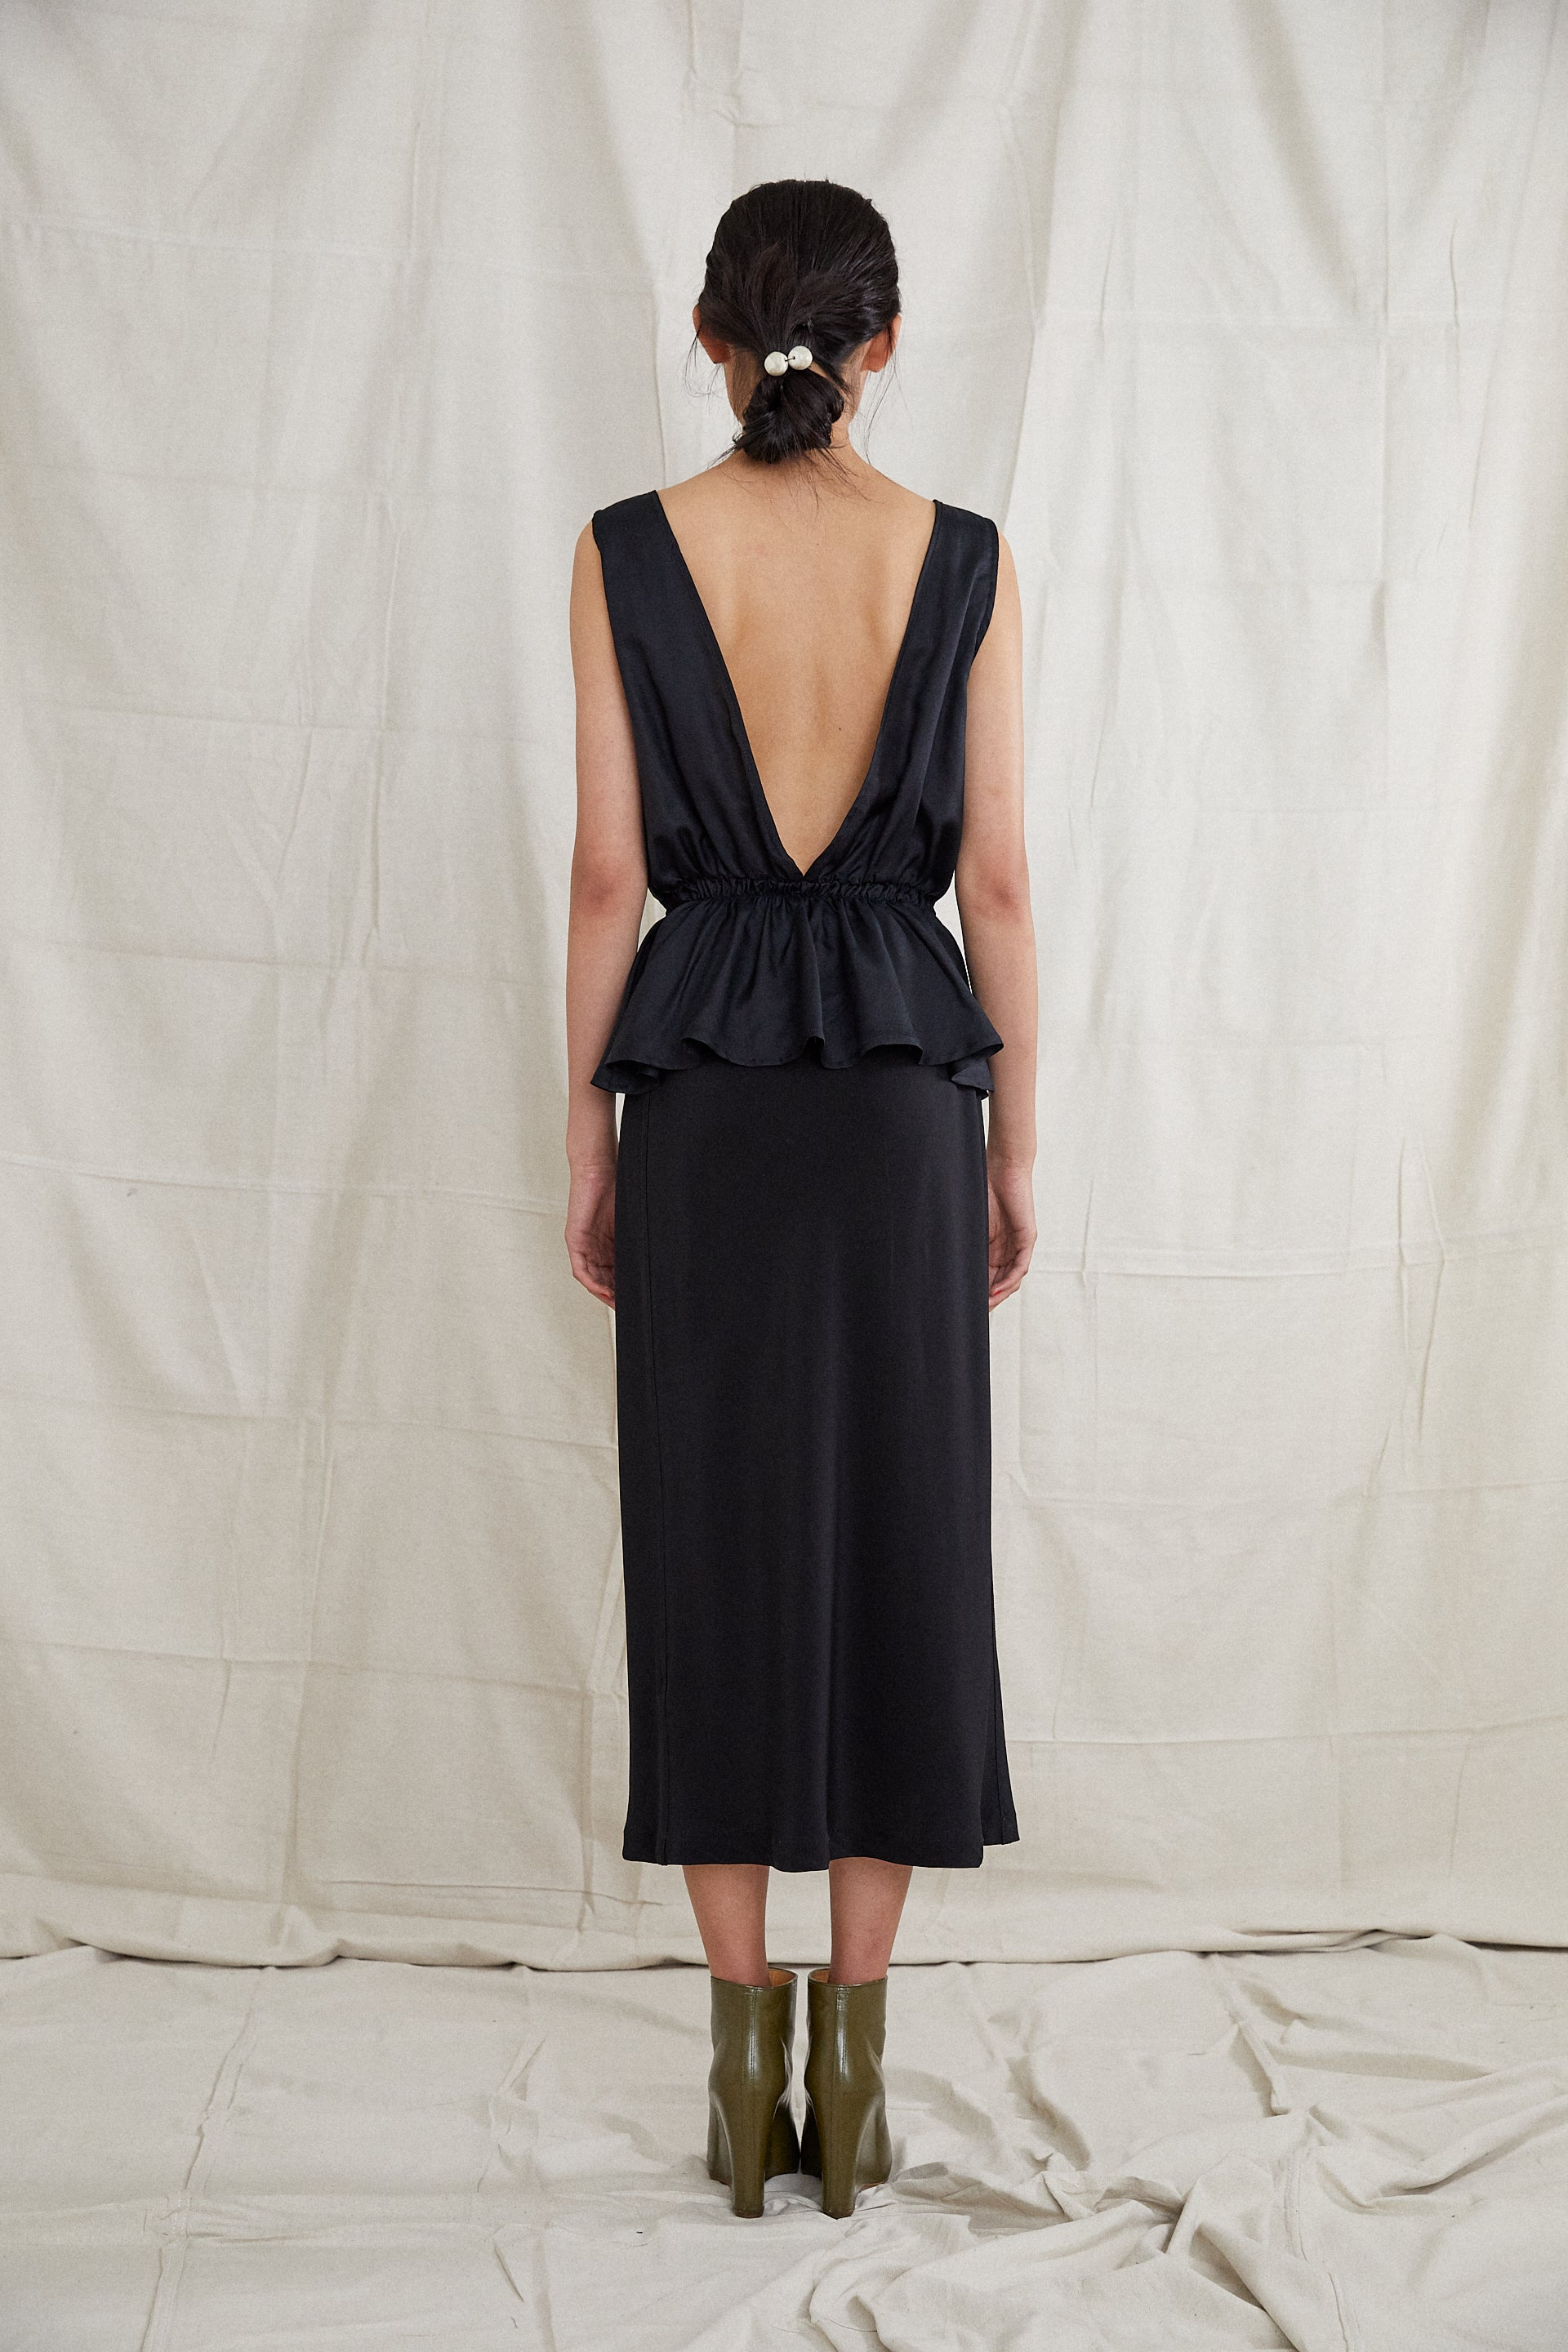 Harbin Skirt - Onyx Silk